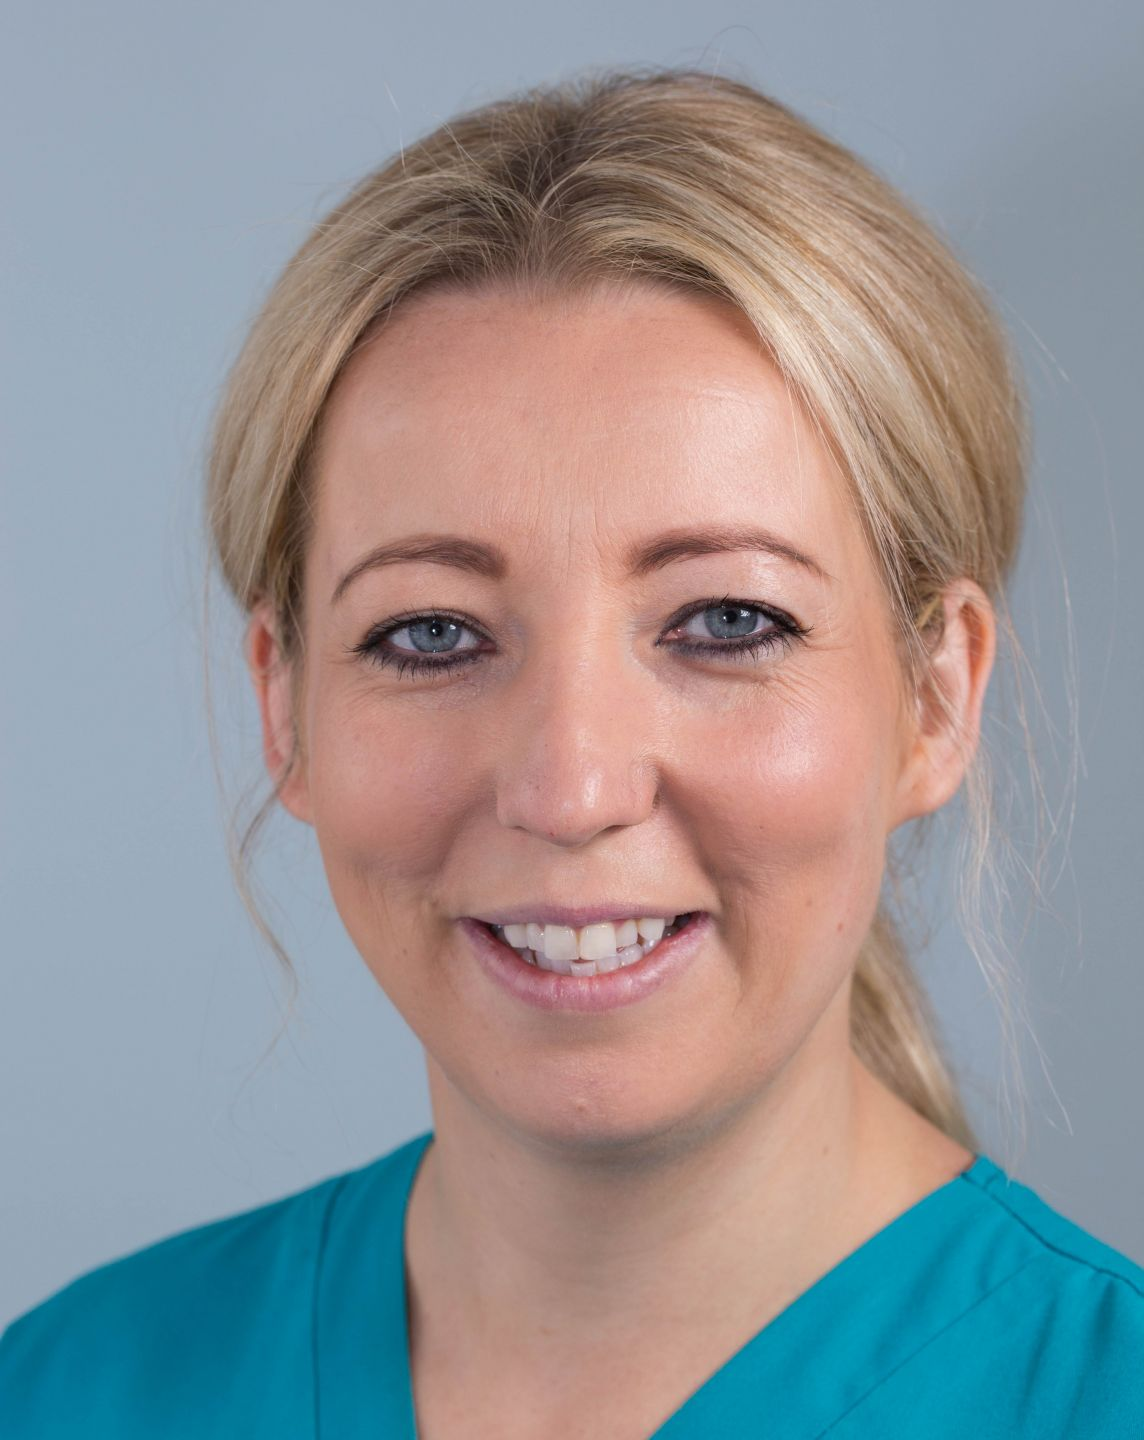 Congratulations to Sarah who has just passed her BDA Certificate in Dental Radiography!